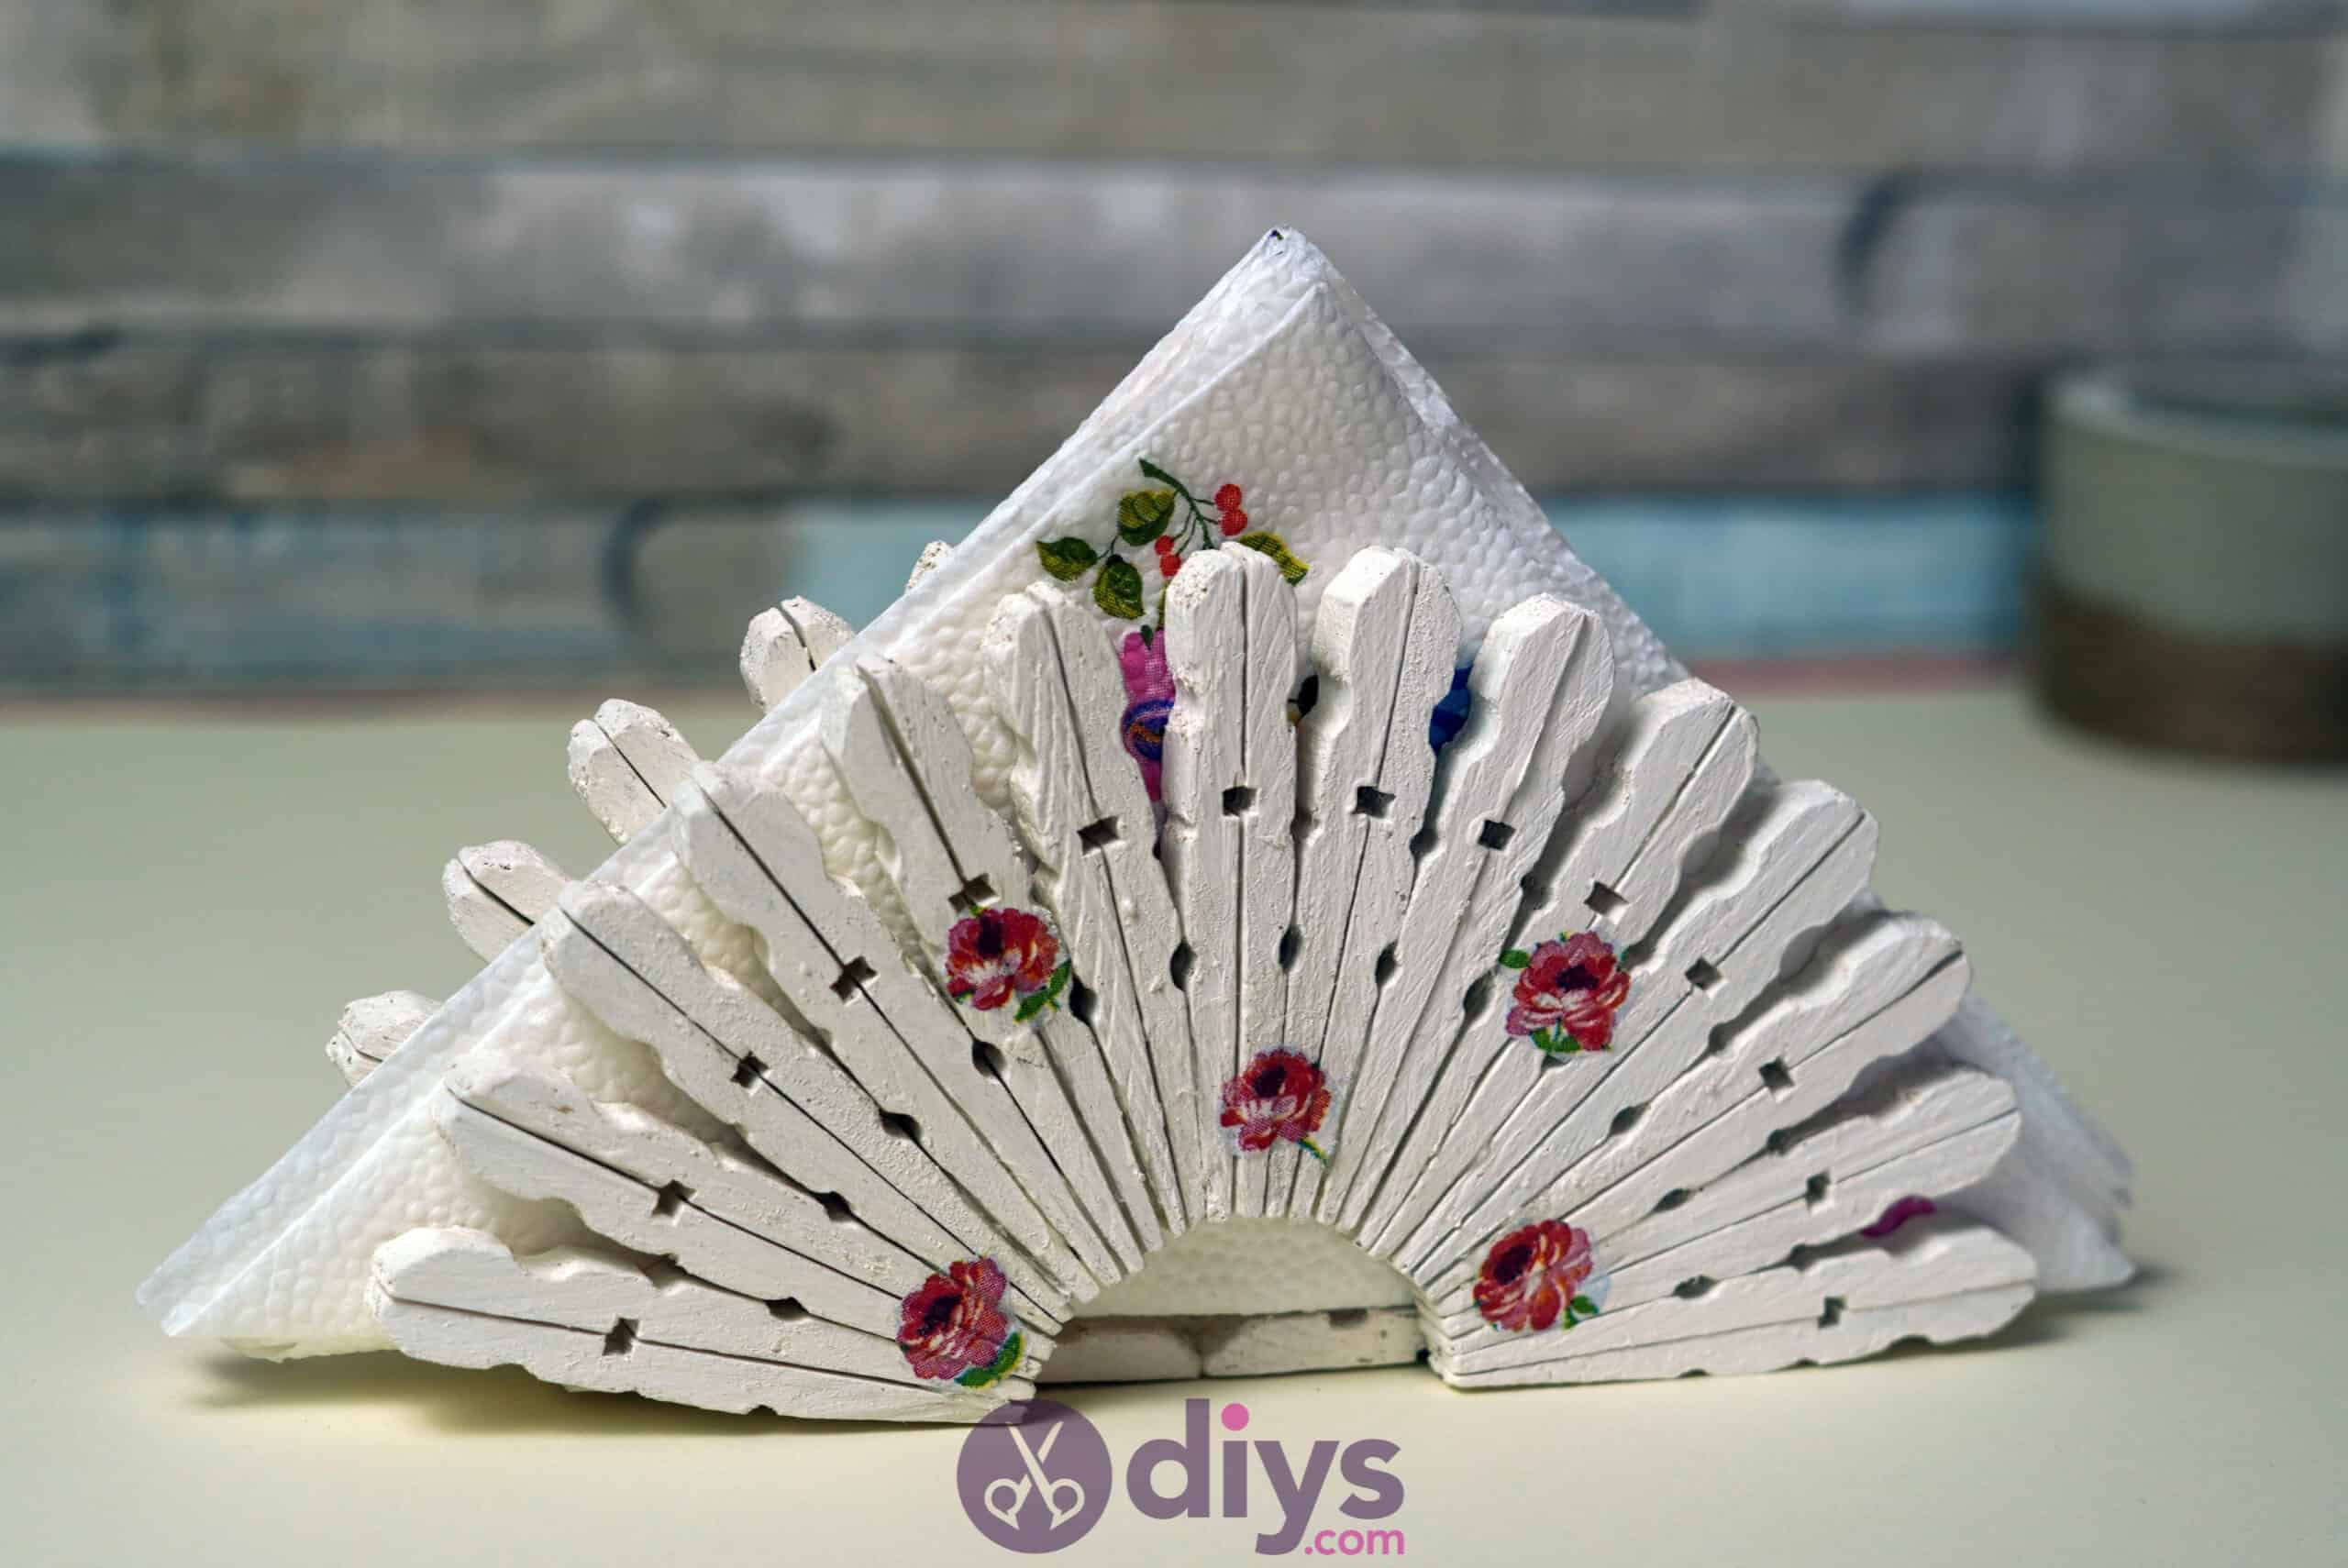 Diy clothespin napkin holder top